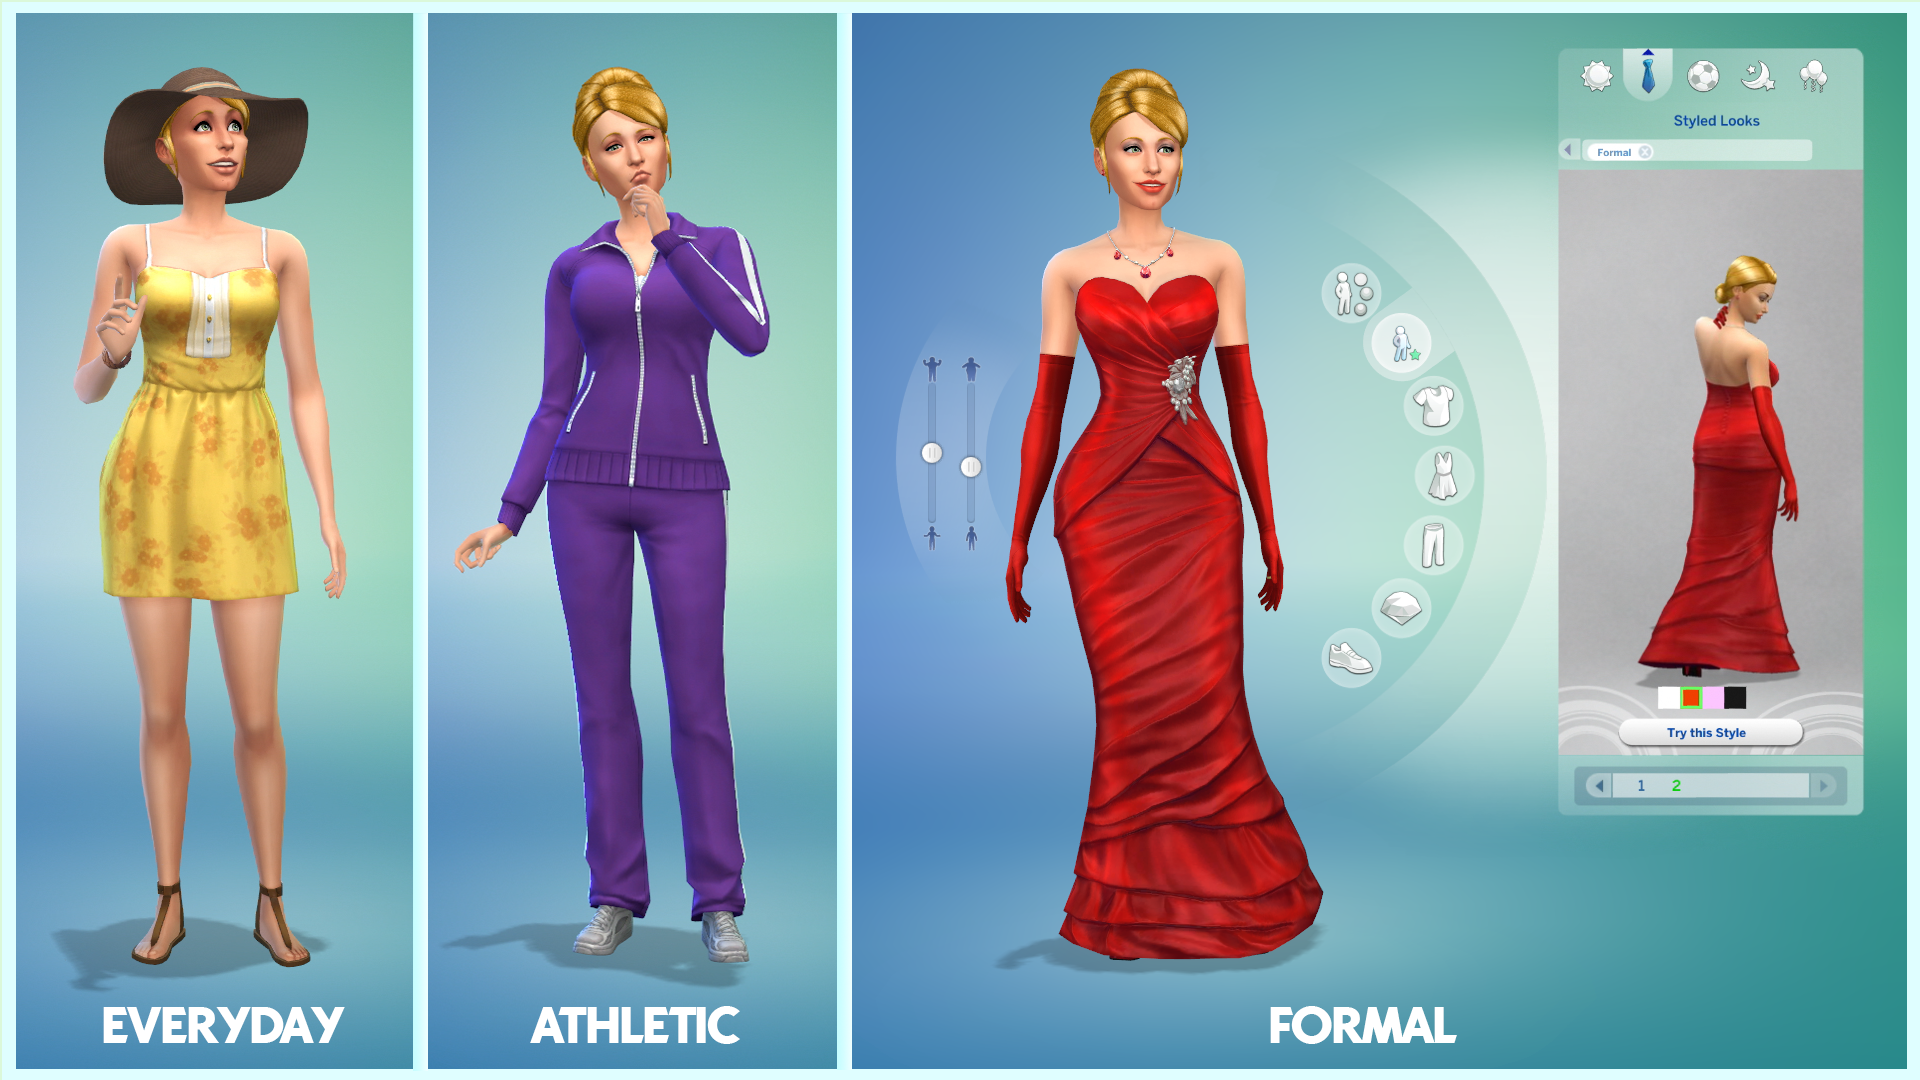 sims 4 dating website